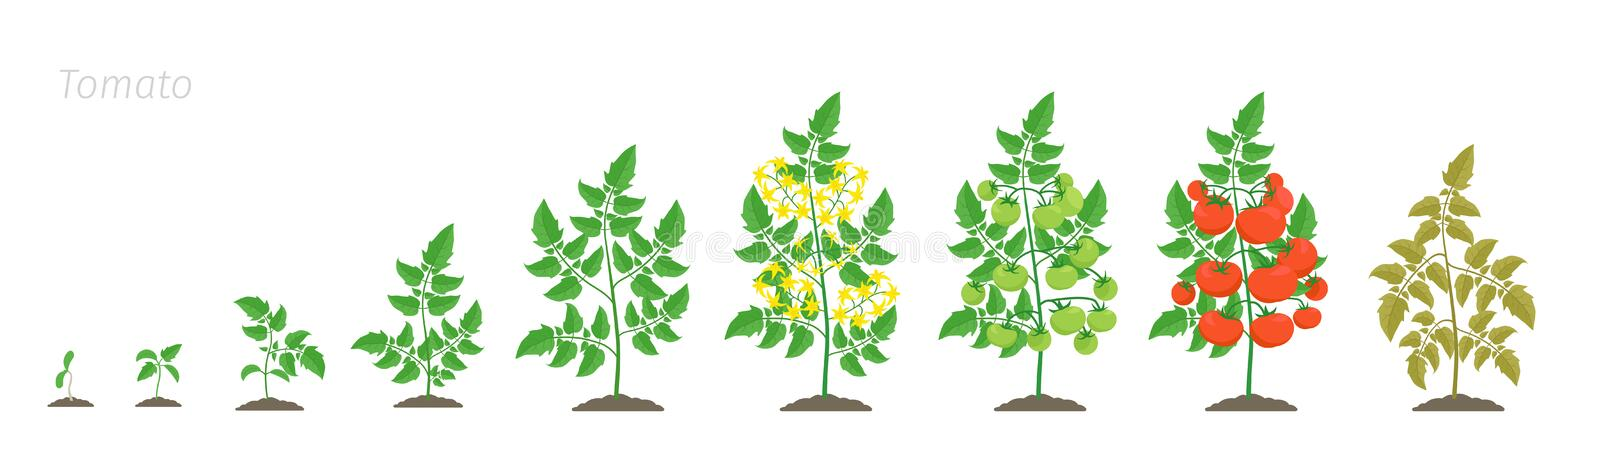 Growth stages of tomato plant. Solanum lycopersicum. Ripening period. The life cycle of the tomatoes. Color vector. Growth stages of tomato plant. Solanum stock illustration